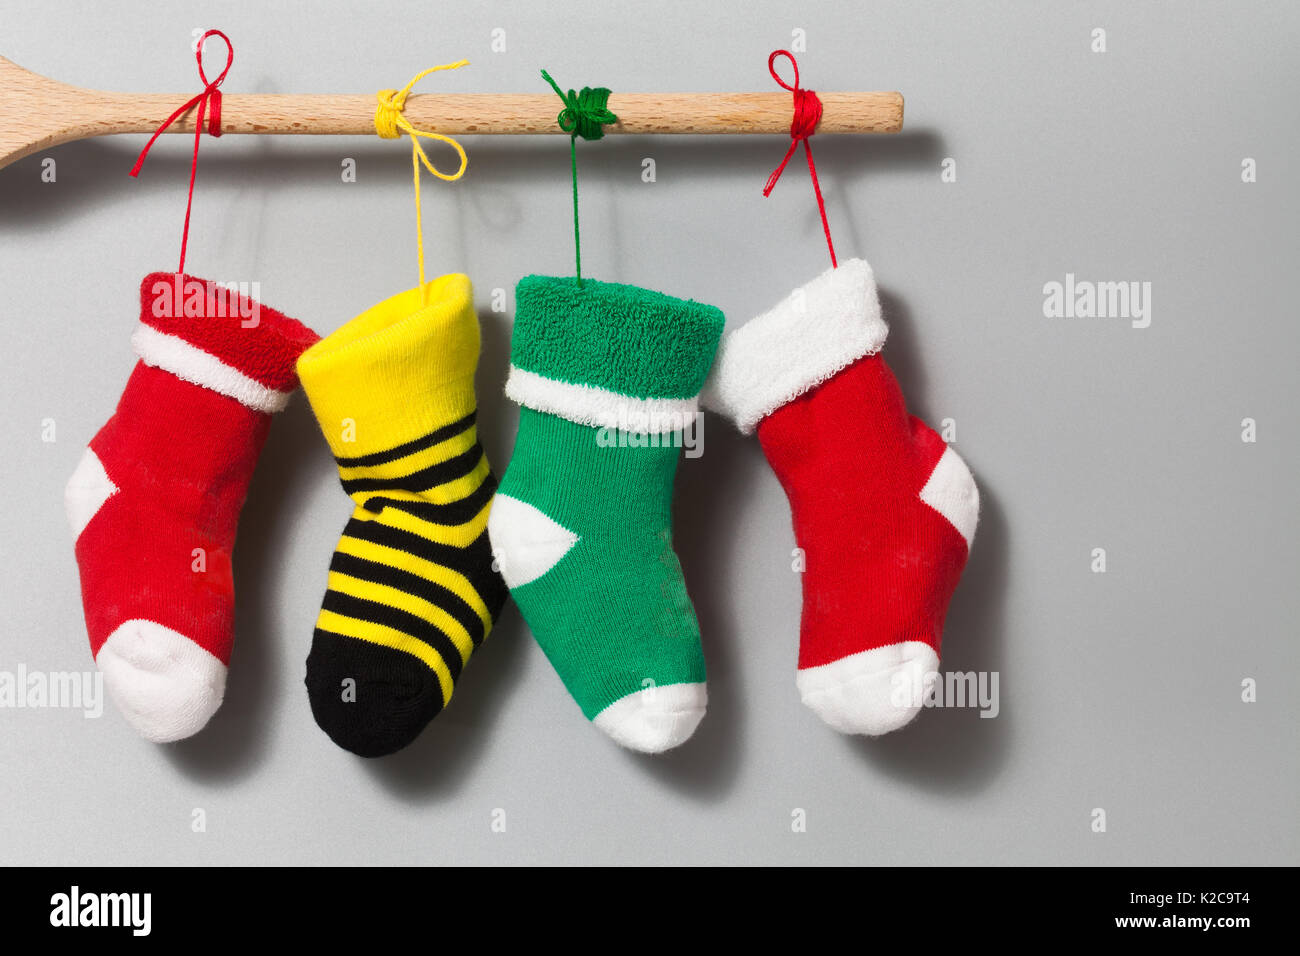 Merry Xmas text invitation card. Hanging Christmas socks on gray beige background. Colorful stocking decoration - Stock Image